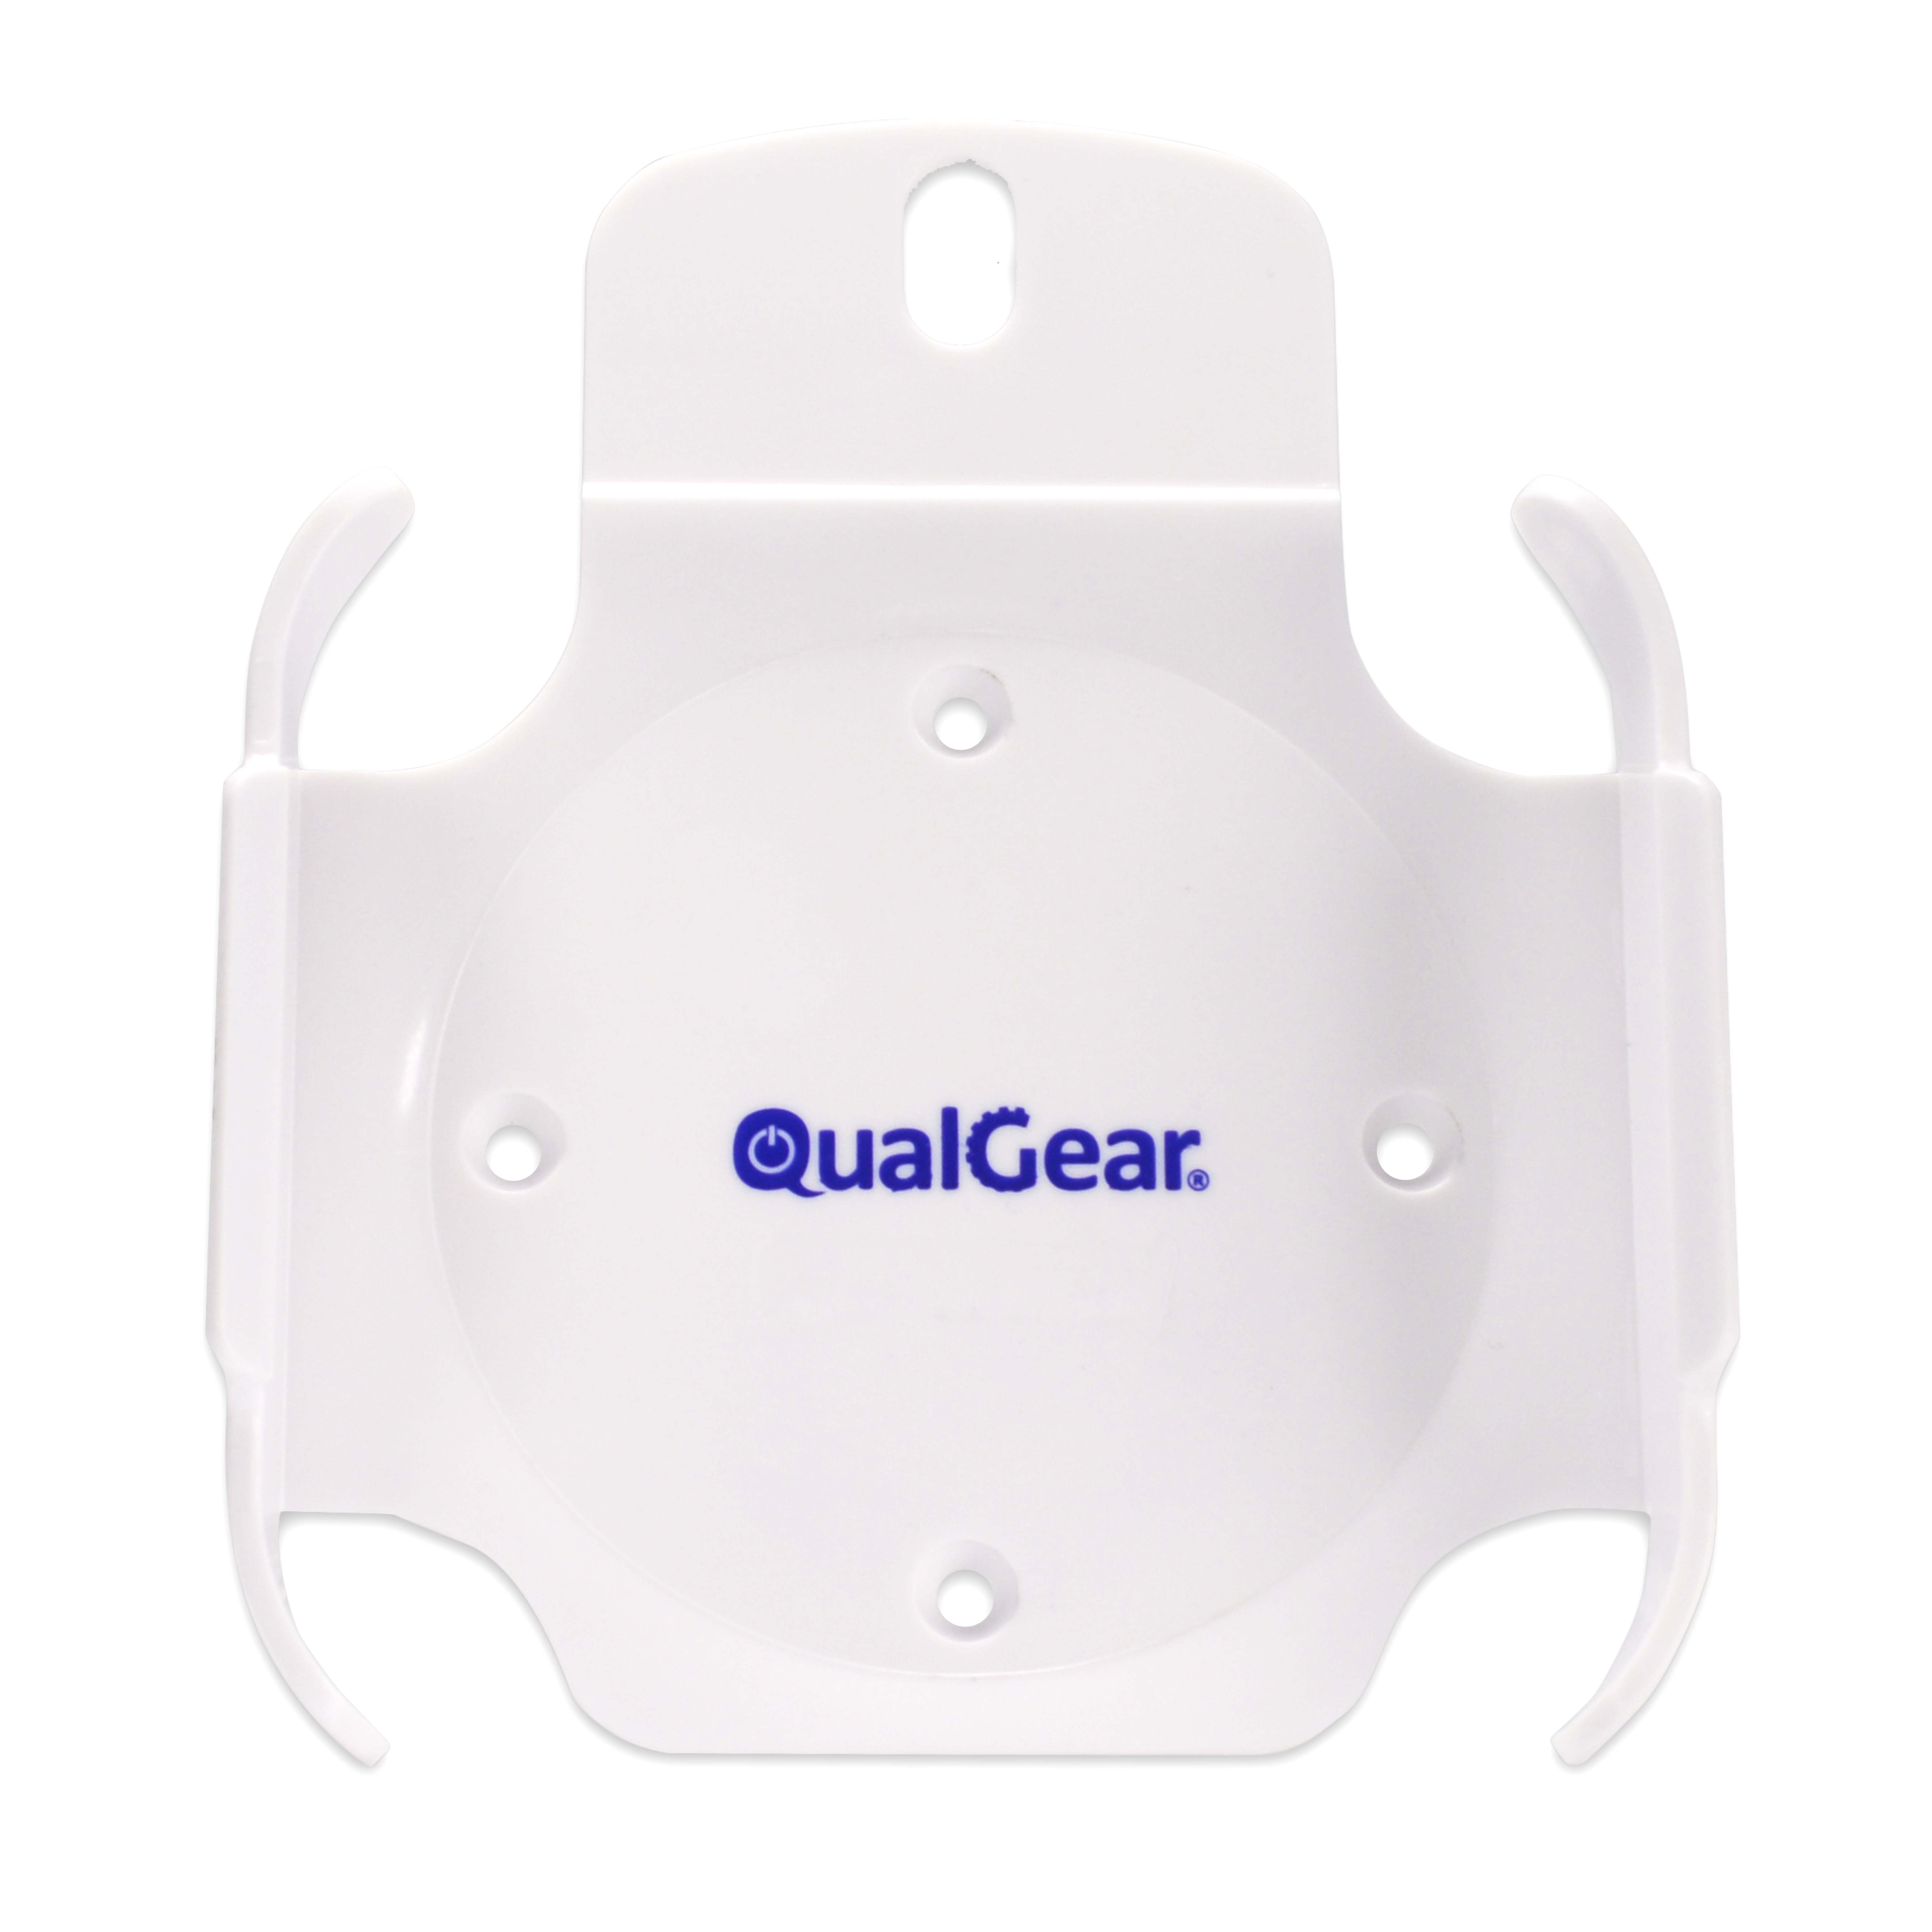 QualGear� QG-AM-017-W Mount for Apple TV/AirPort Express Base Station (For 2nd & 3rd Generation Apple TVs)